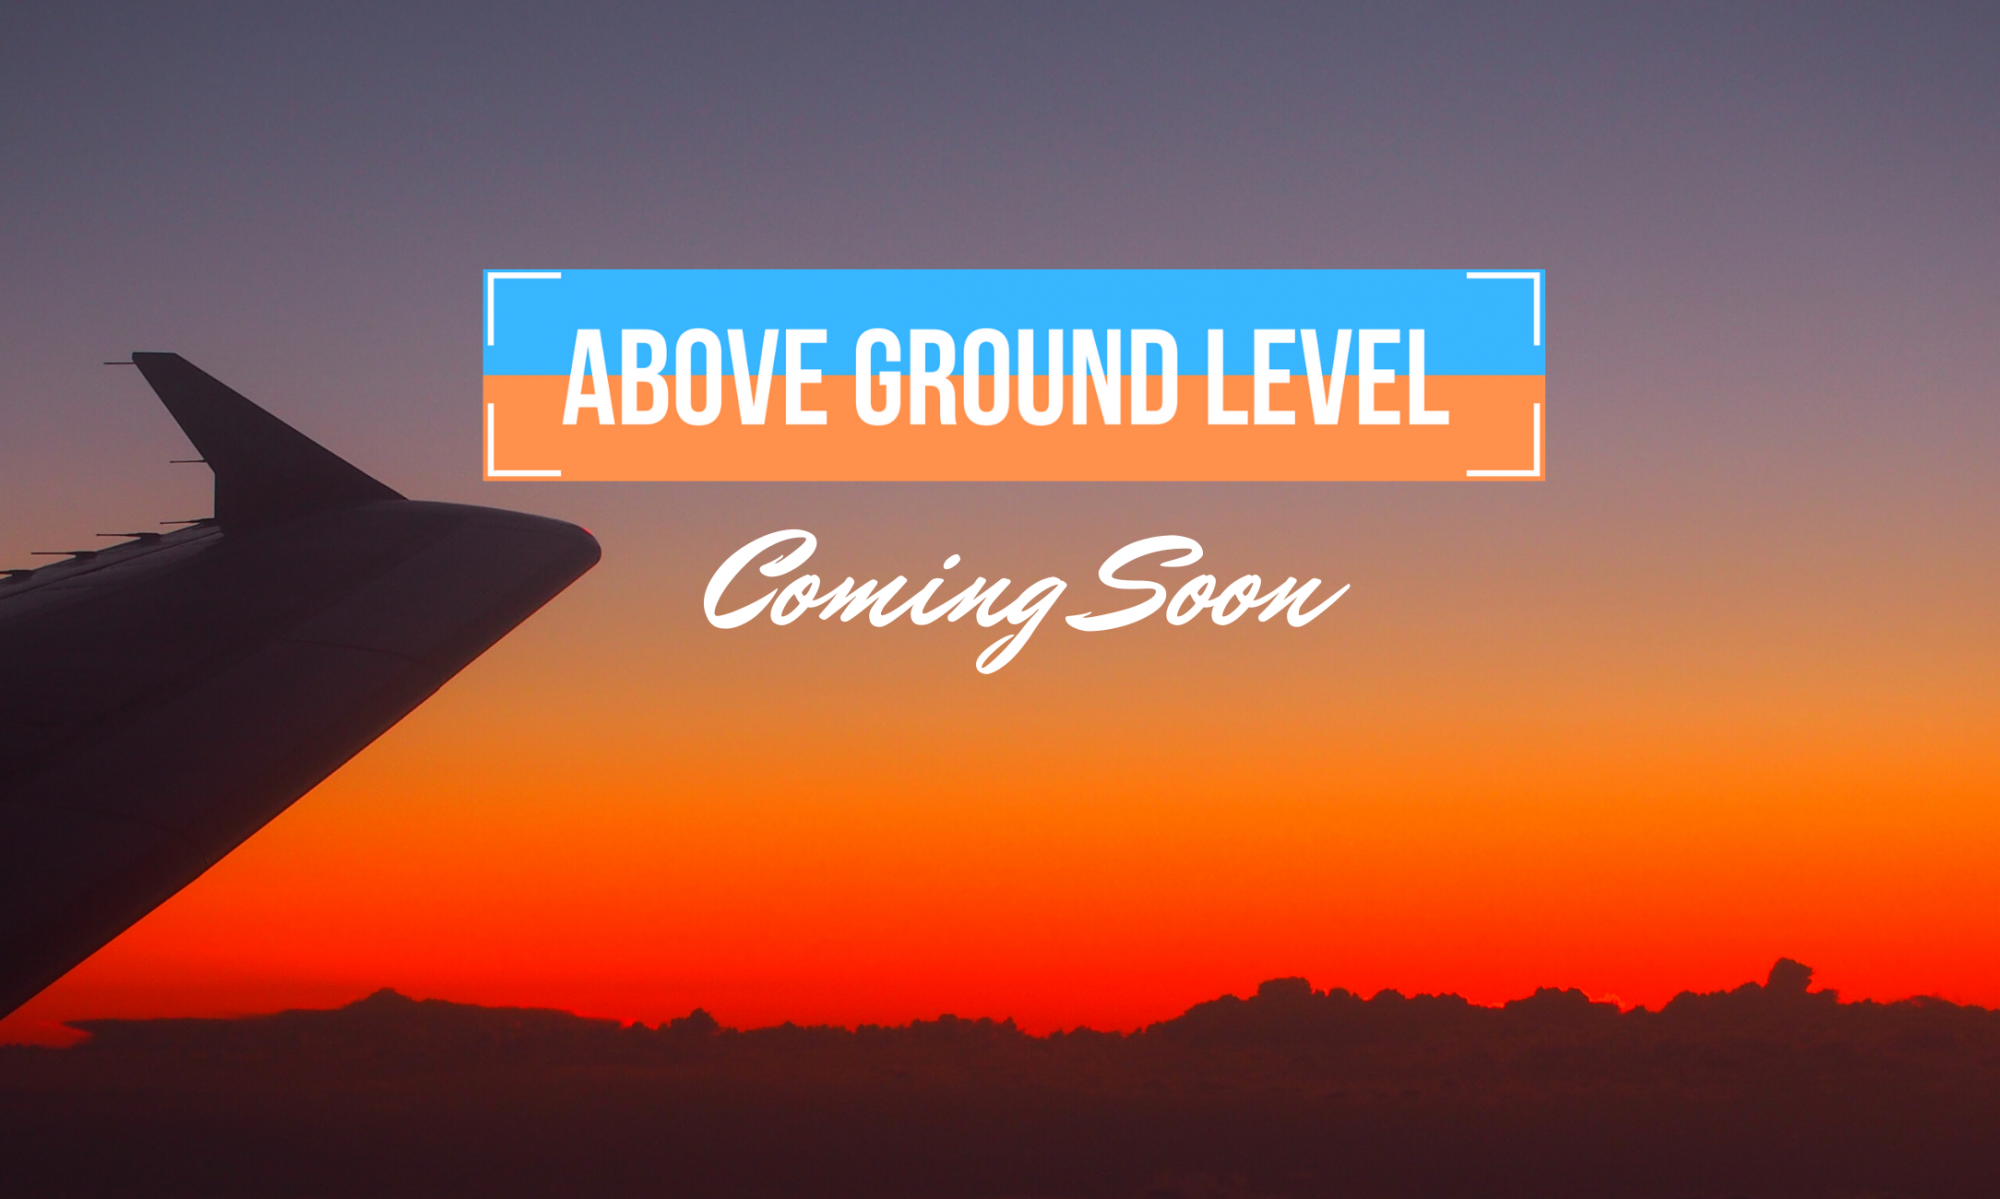 Above Ground Level